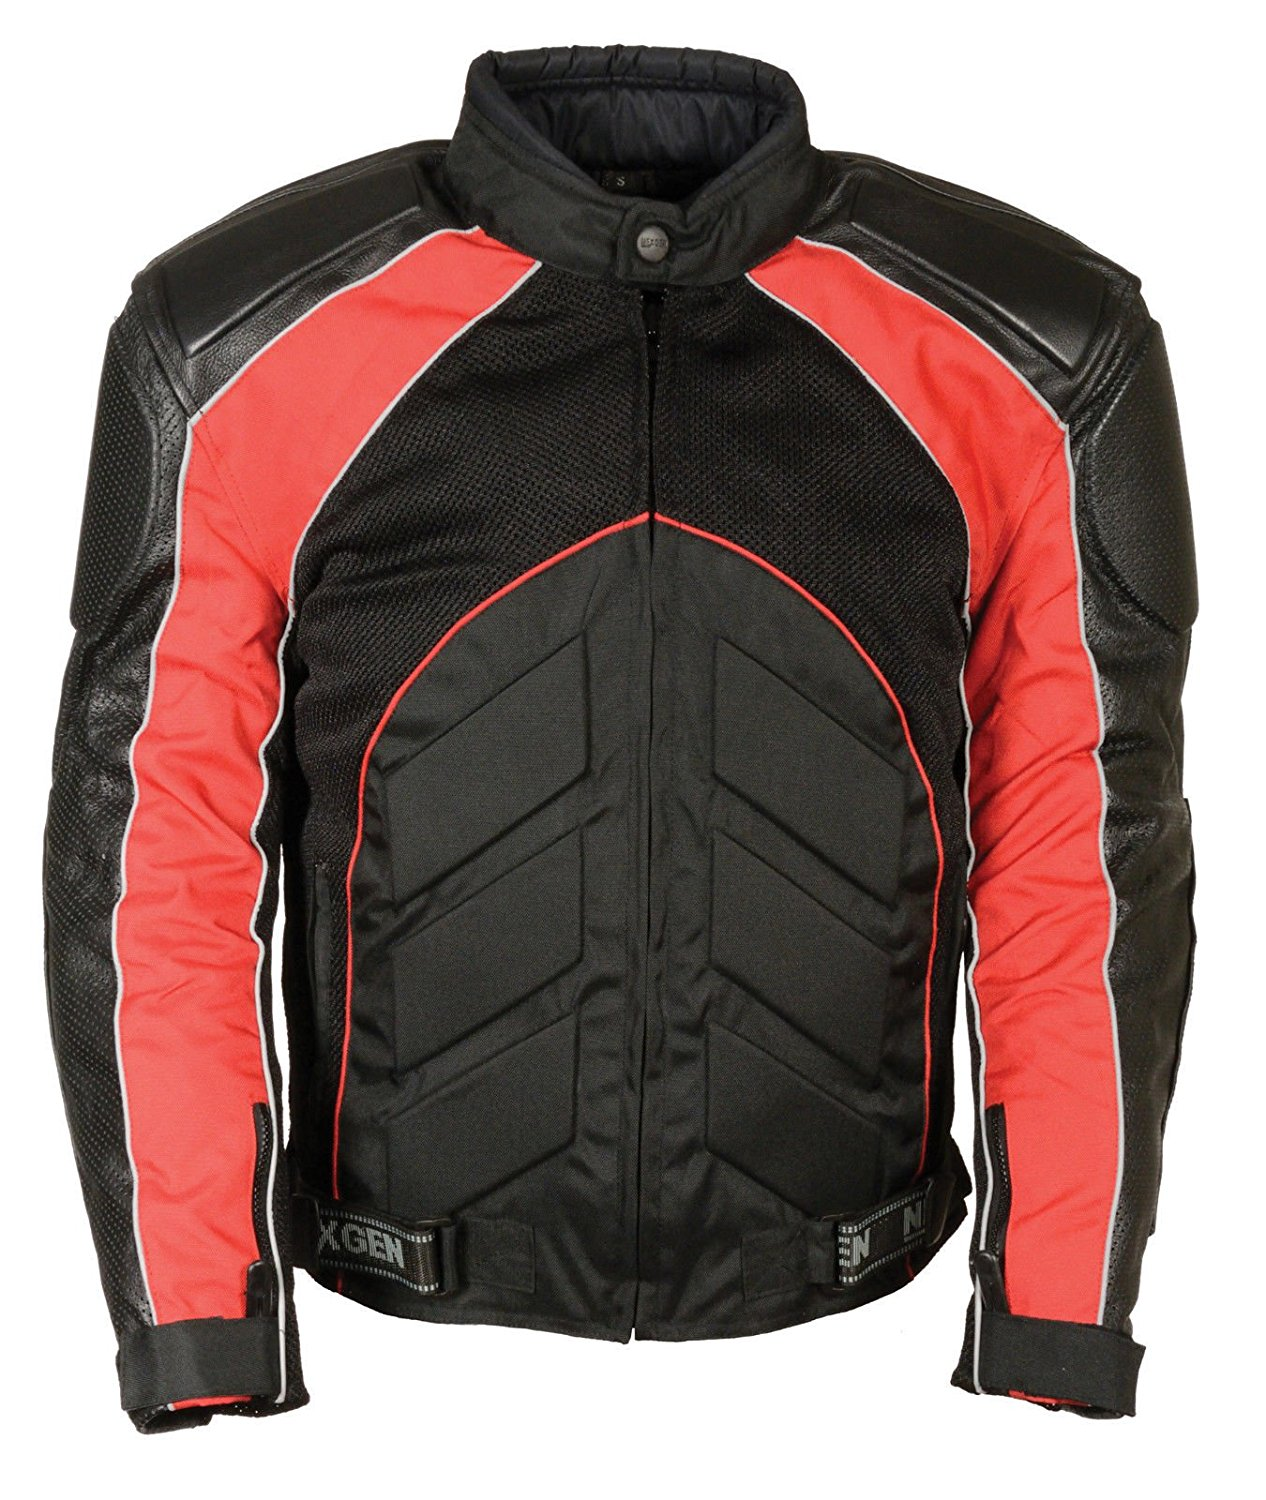 Shaf MEN'S MOTORCYCLE PERFORATED LEATHER & MESH RACER JACKET W/ARMOUR PROTECTION RED (M Red)